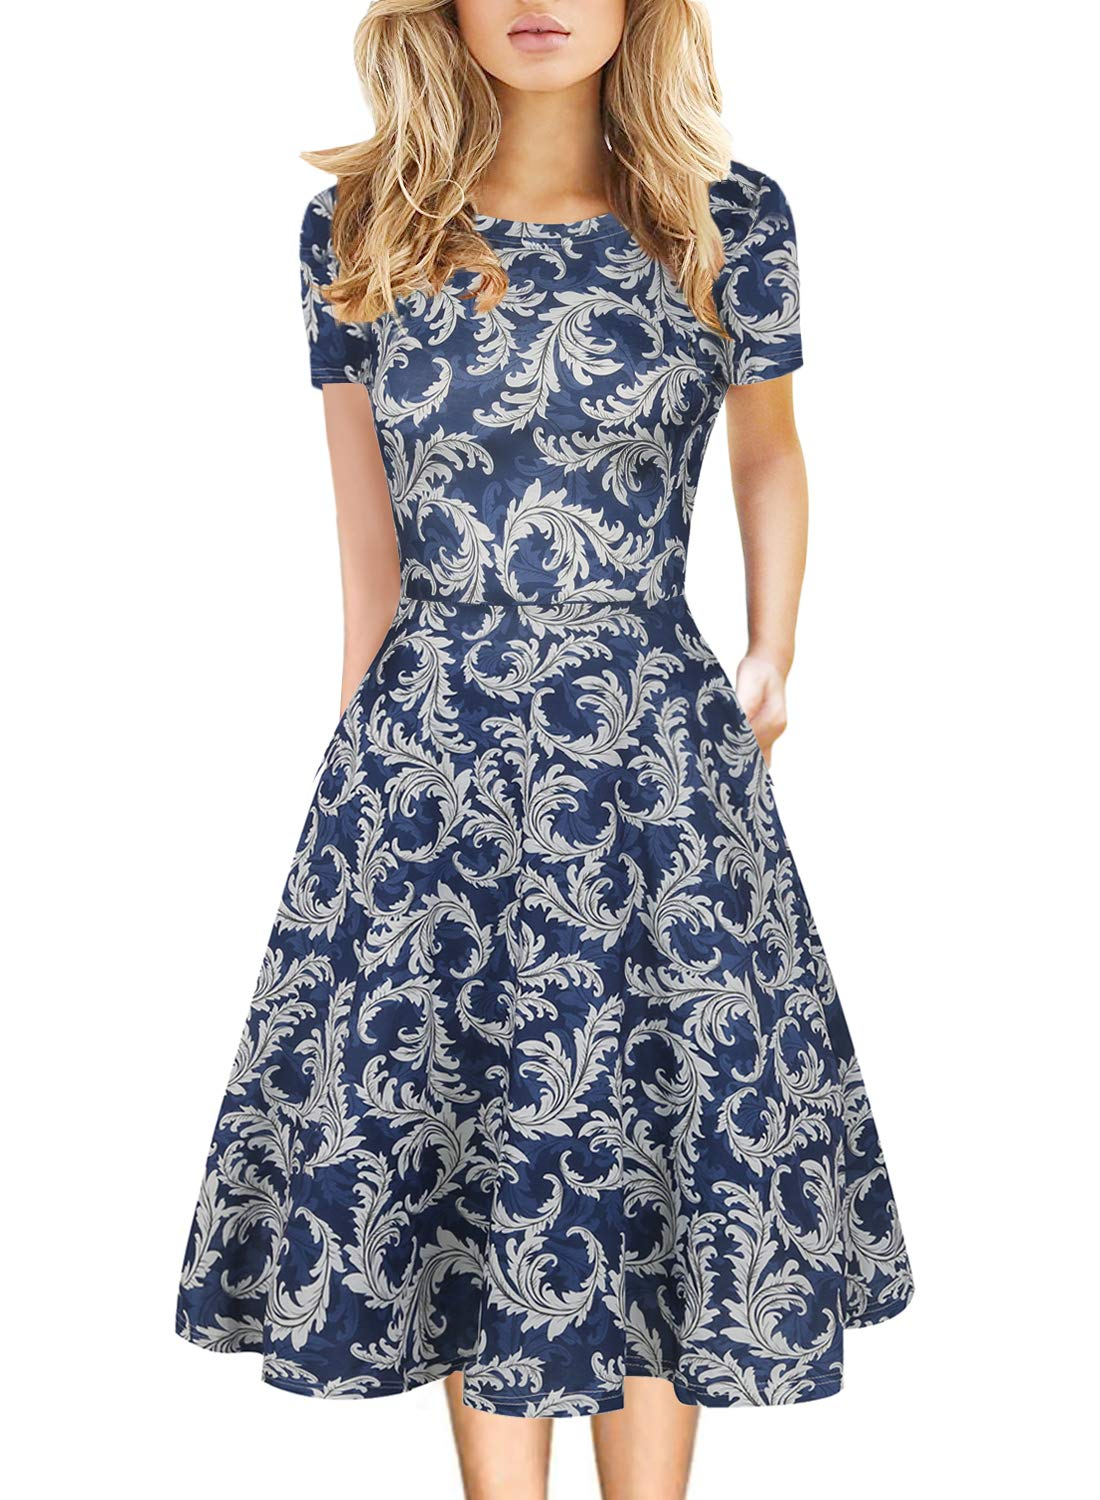 HELYO Floral Midi Dress Wear to Work 3/4 Sleeve Flared Dresses with Pocket Mid Knee Length 1960's Vintage Clothing Plus Size 162 (Blue-White, XXL)